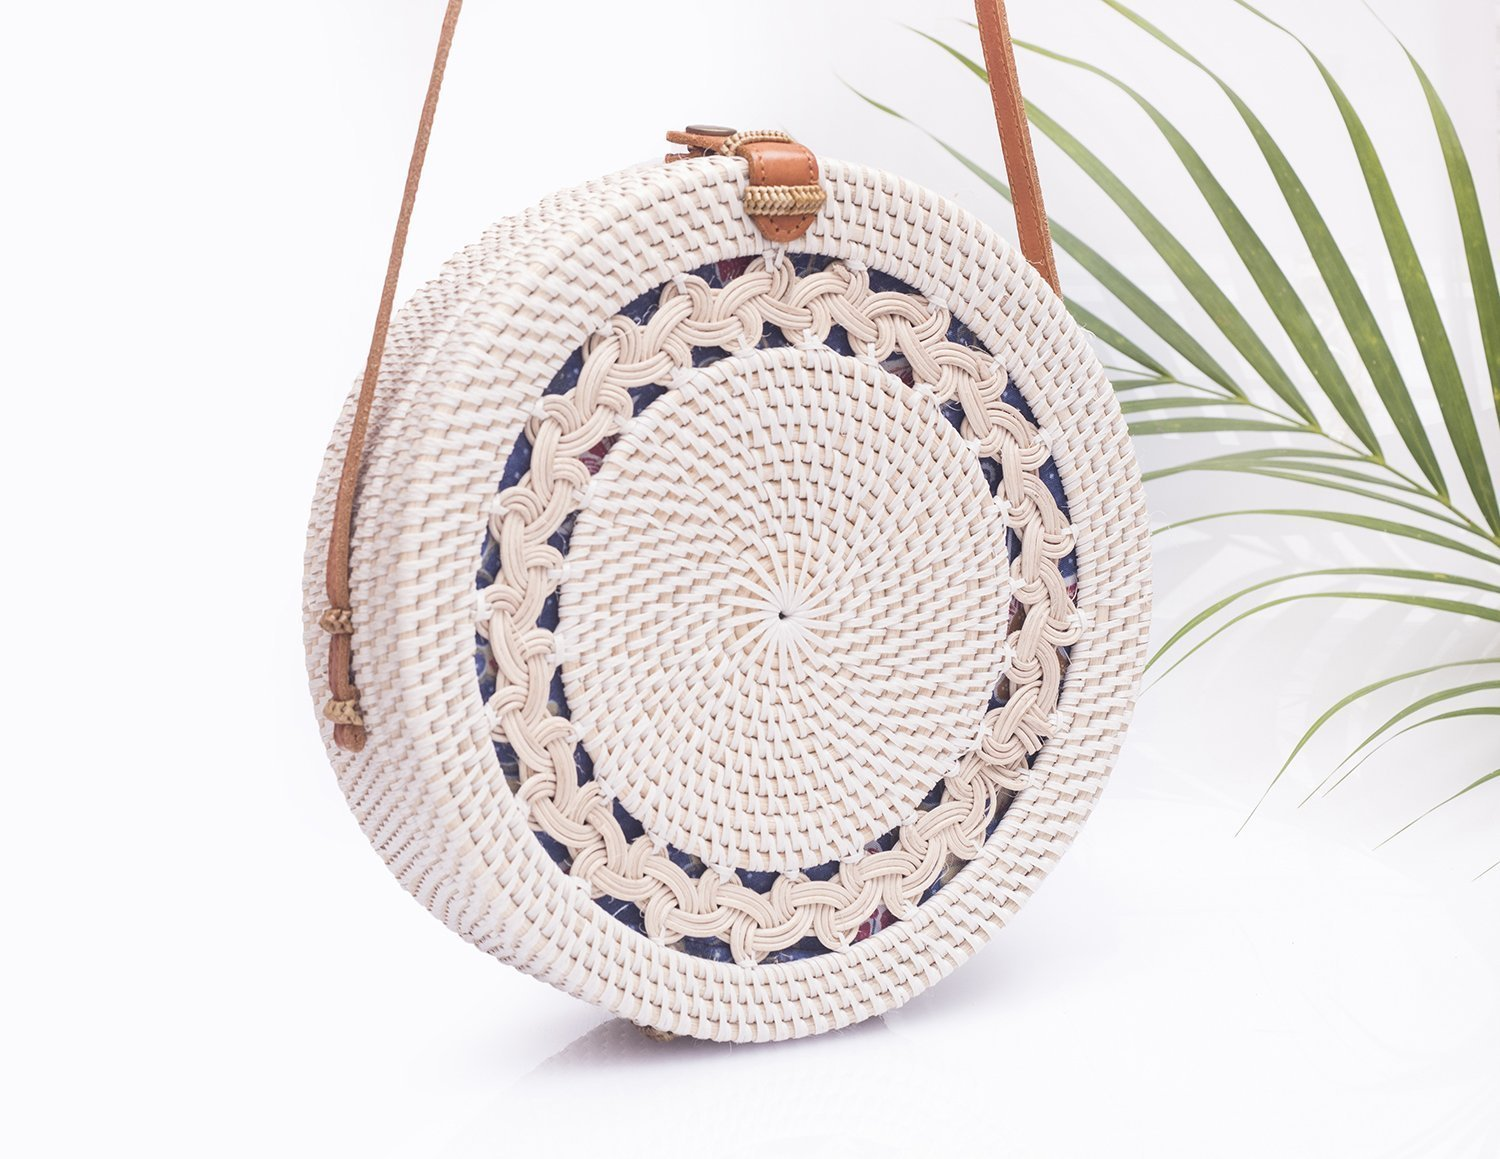 Big White Round Straw Bag - Stunning Round Rattan Bag To Wear With Any Outfit